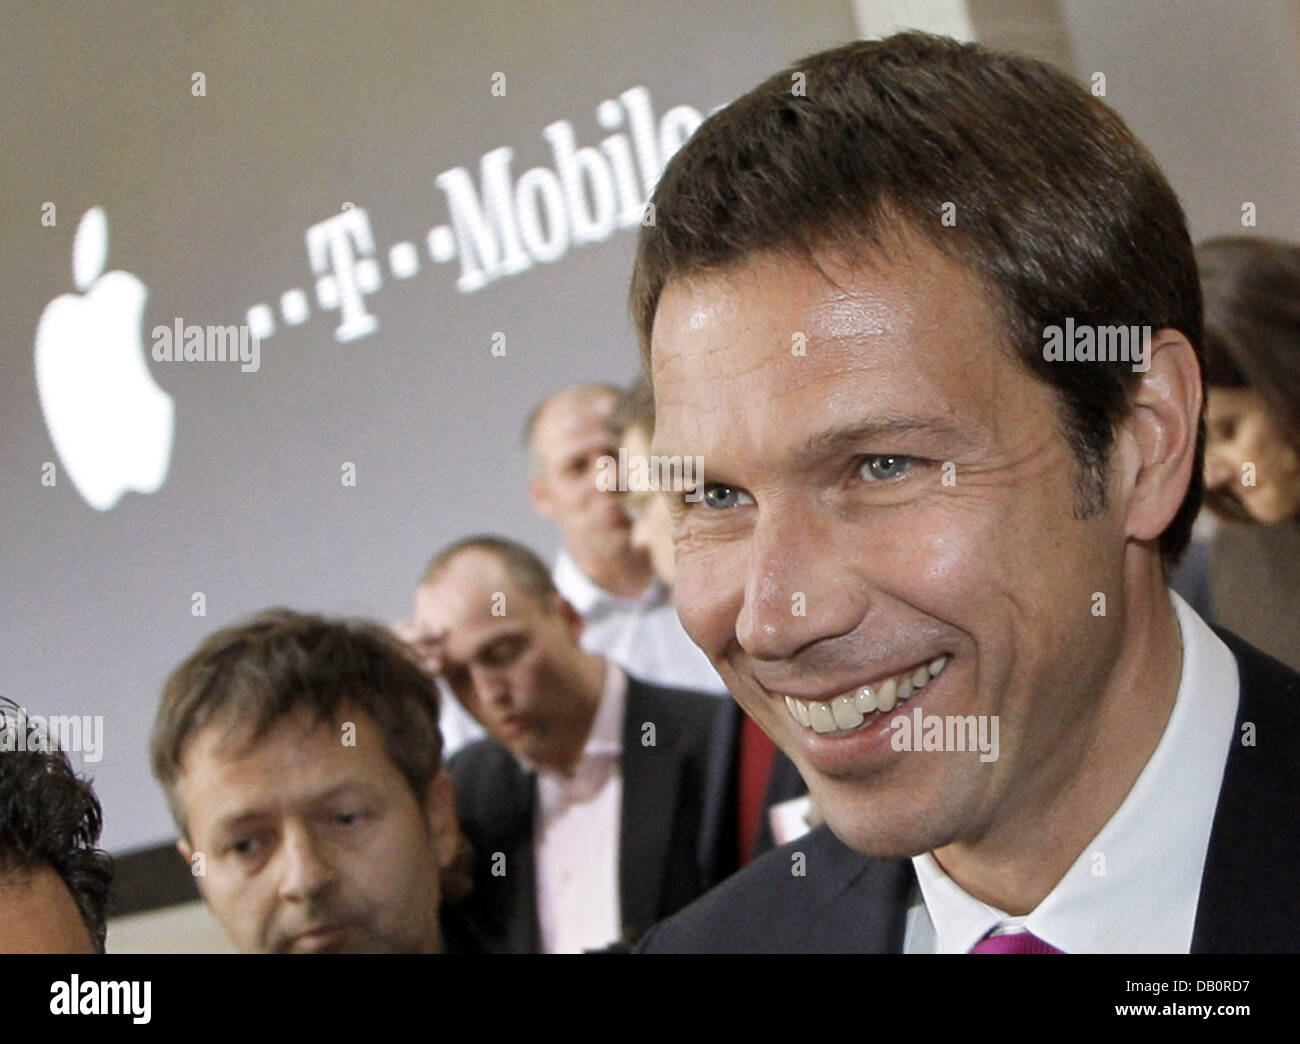 The CEO of Telekom Rene Obermann is pictured at the presentation of the iPhone in Berlin, 19 September 2007. Deutsche - Stock Image